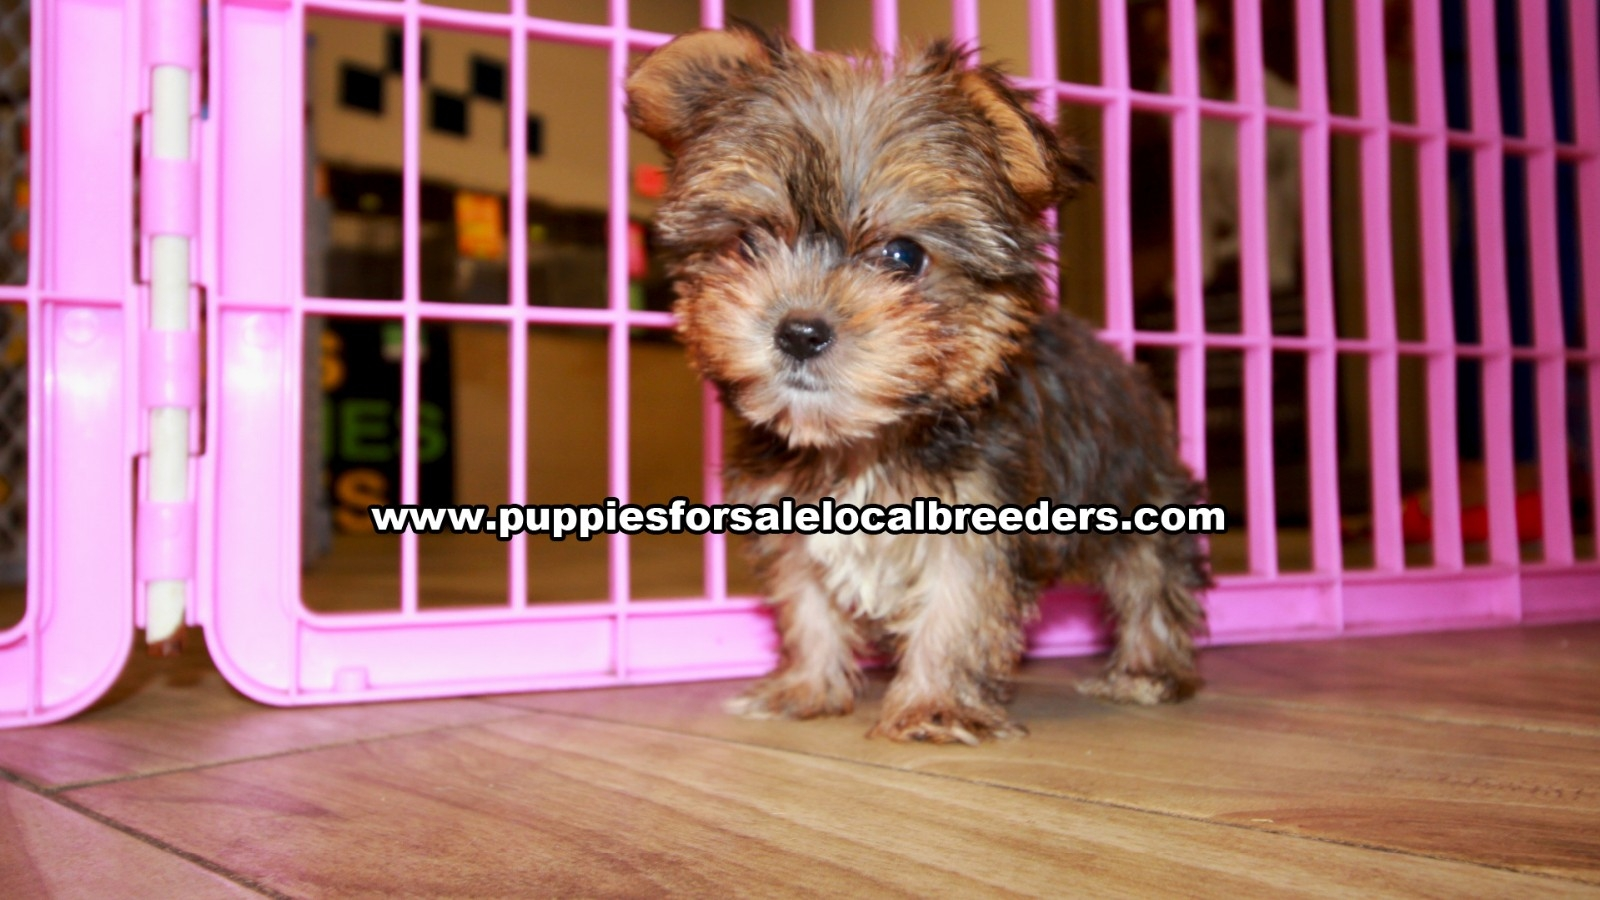 Gold Yorkie, Puppies For Sale In Georgia, Local Breeders, Near Atlanta, Ga